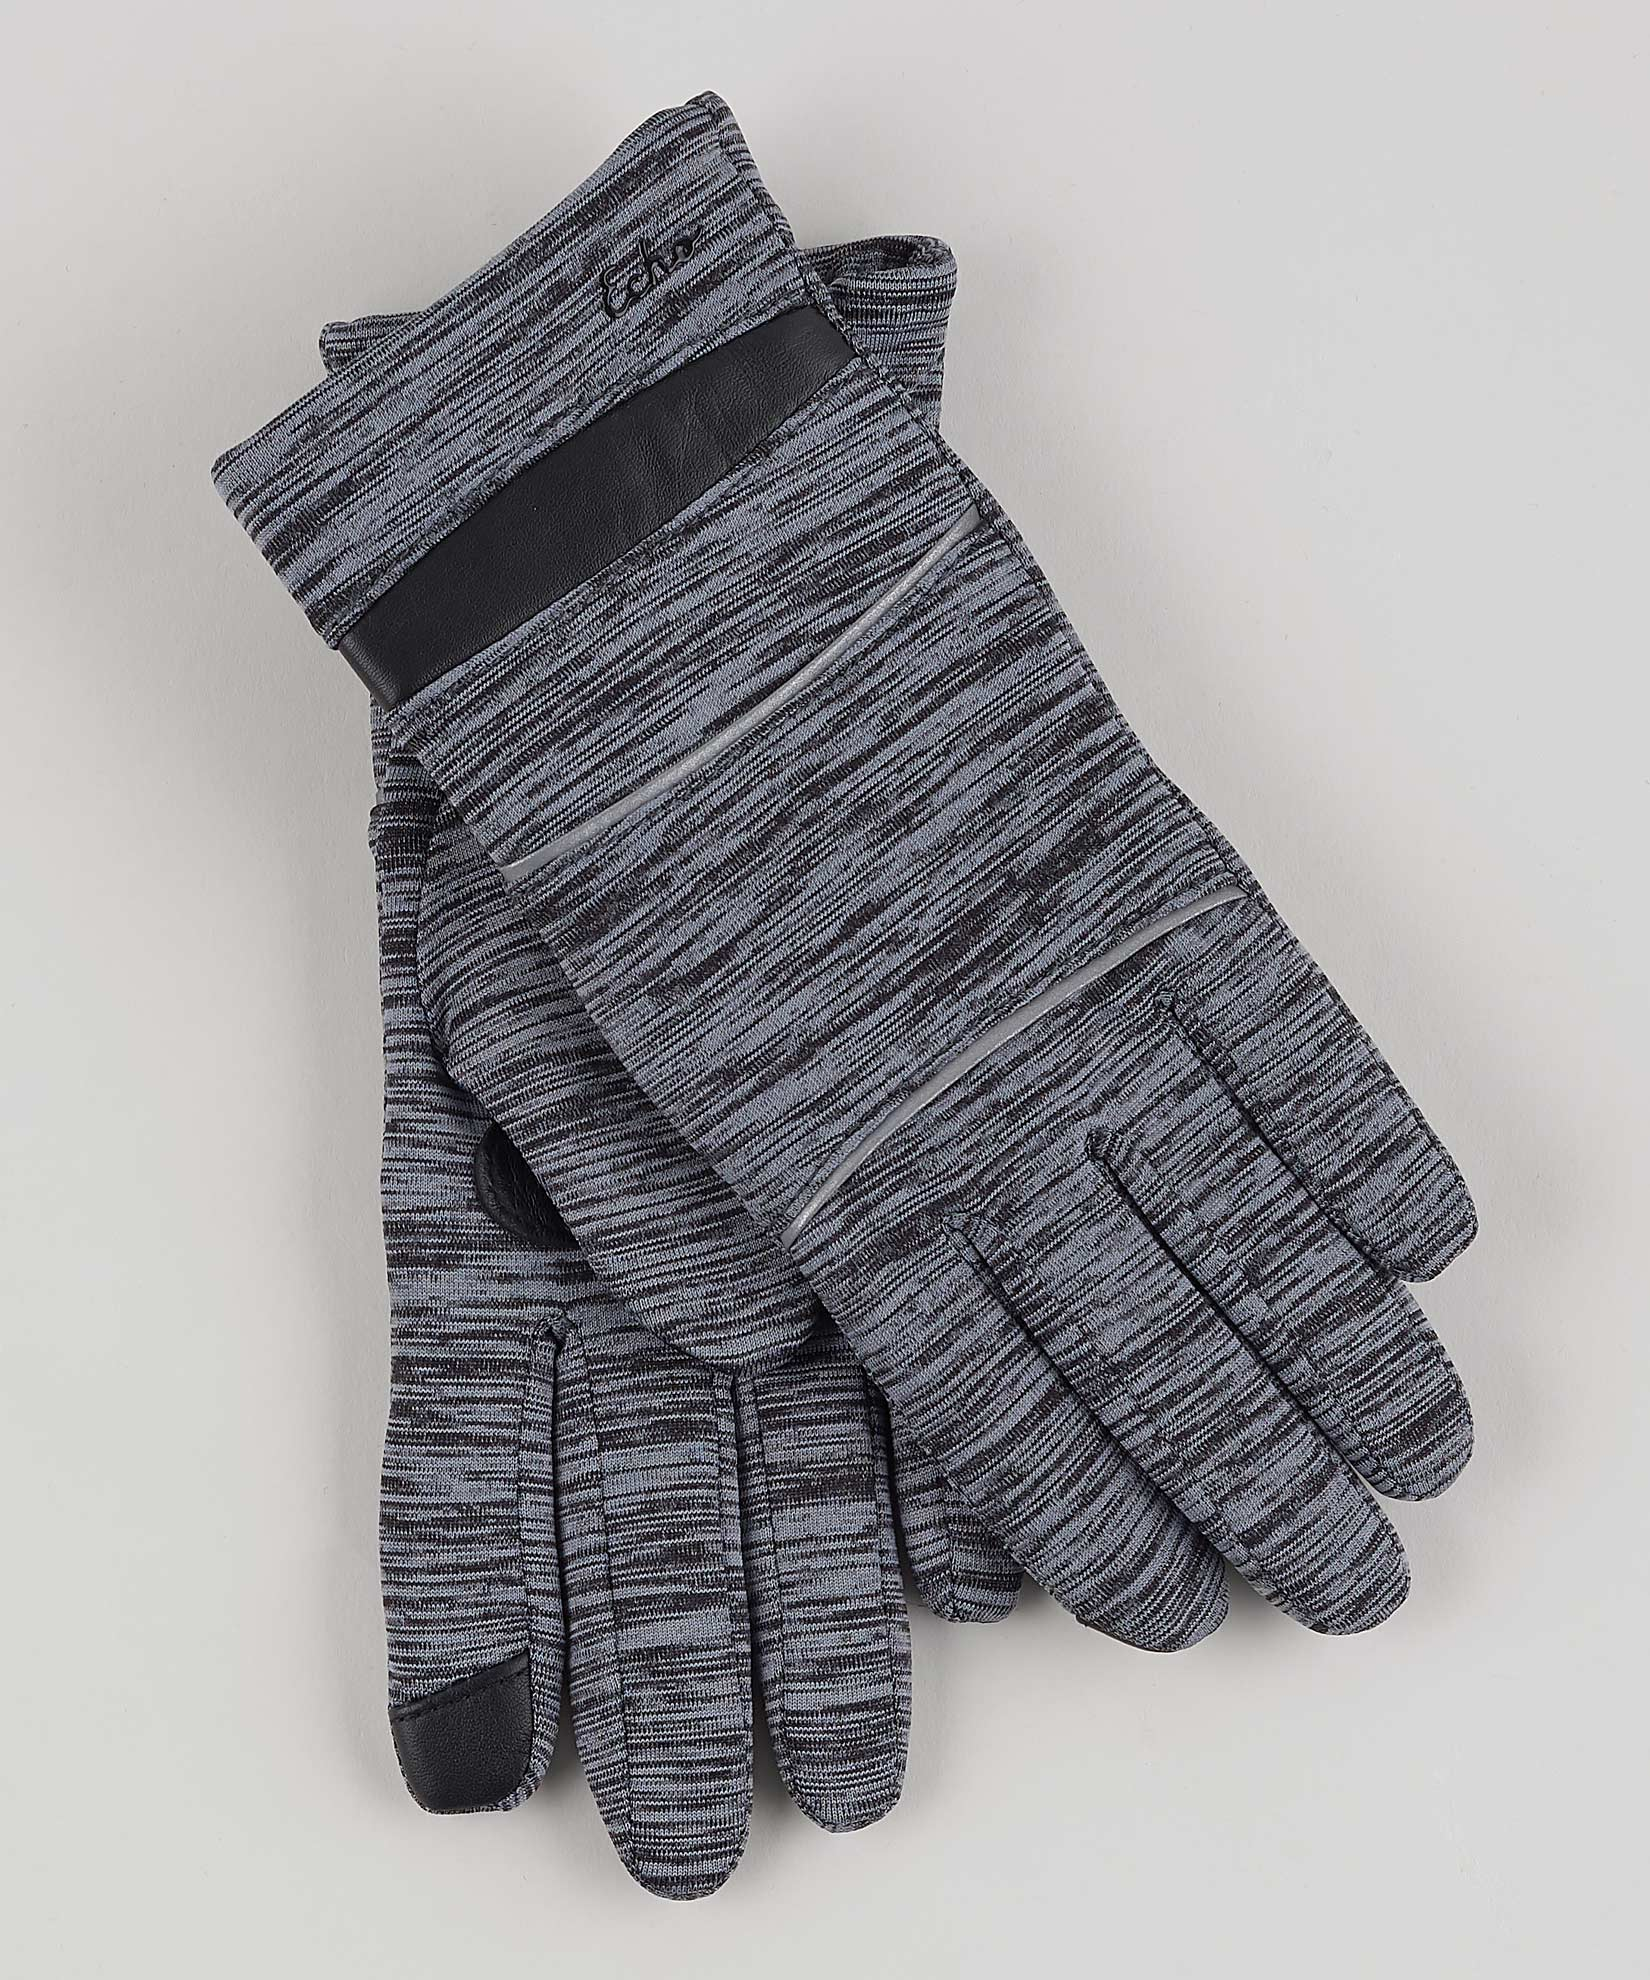 Heather Grey - Reflective Superfit Glove